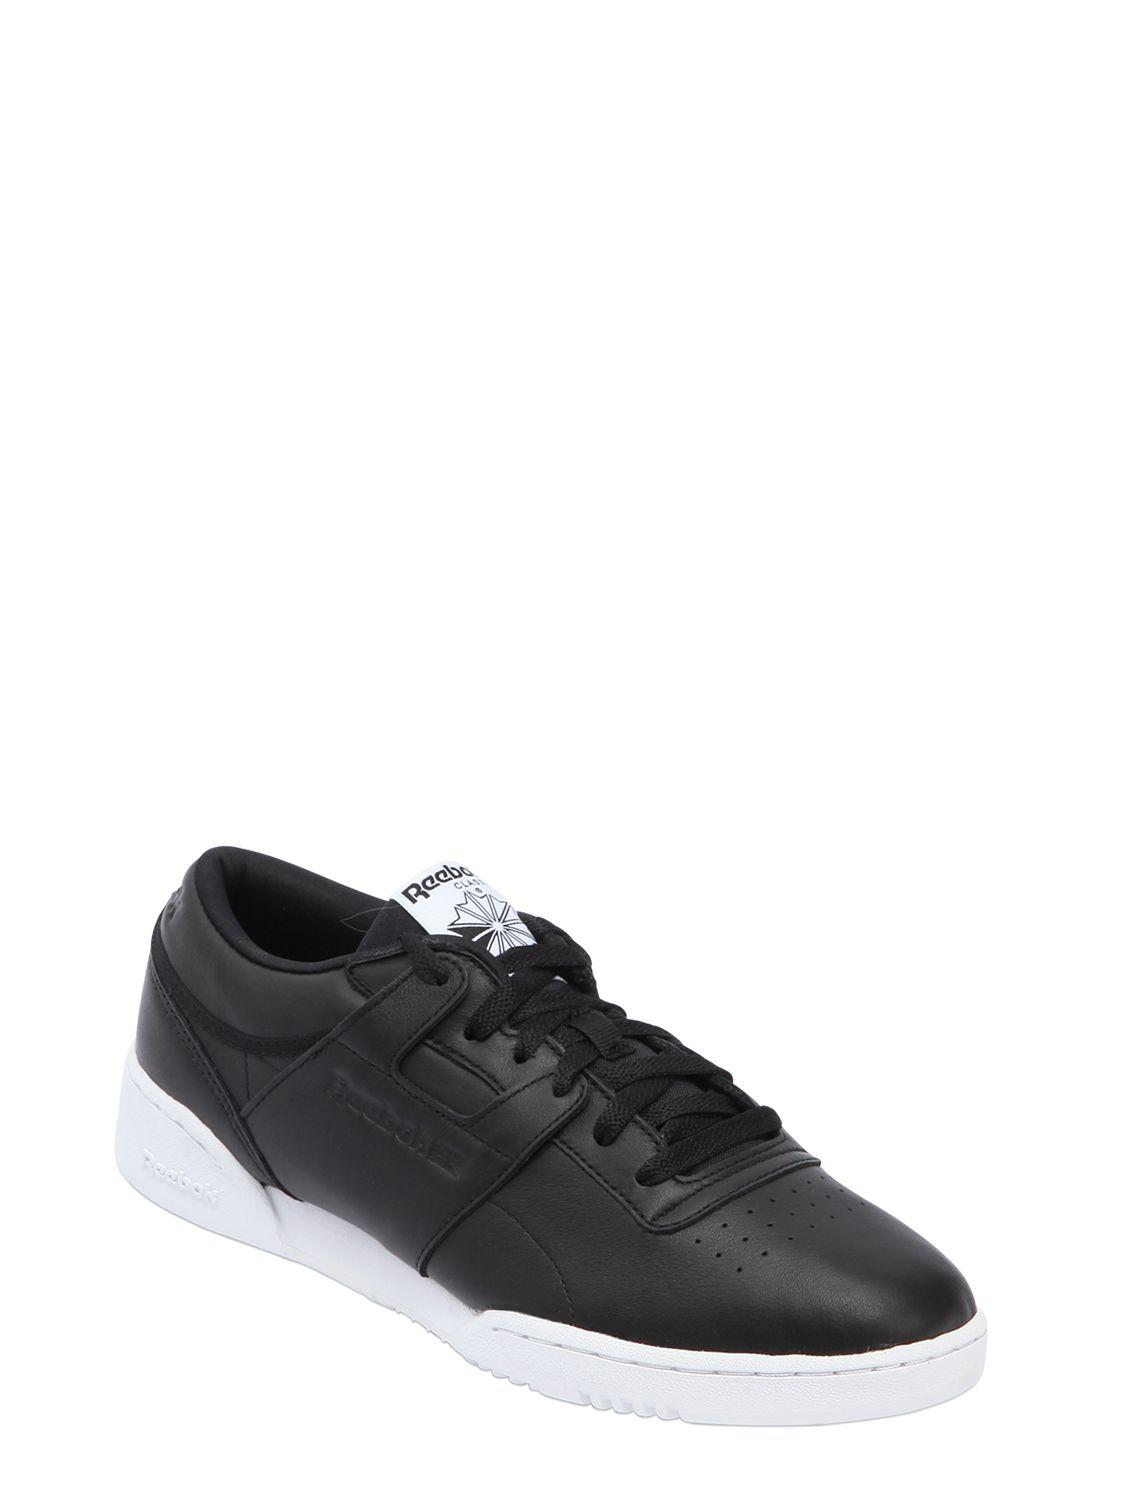 Reebok WORKOUT LOW CLEAN ID LEATHER SNEAKERS 5VrlQt4